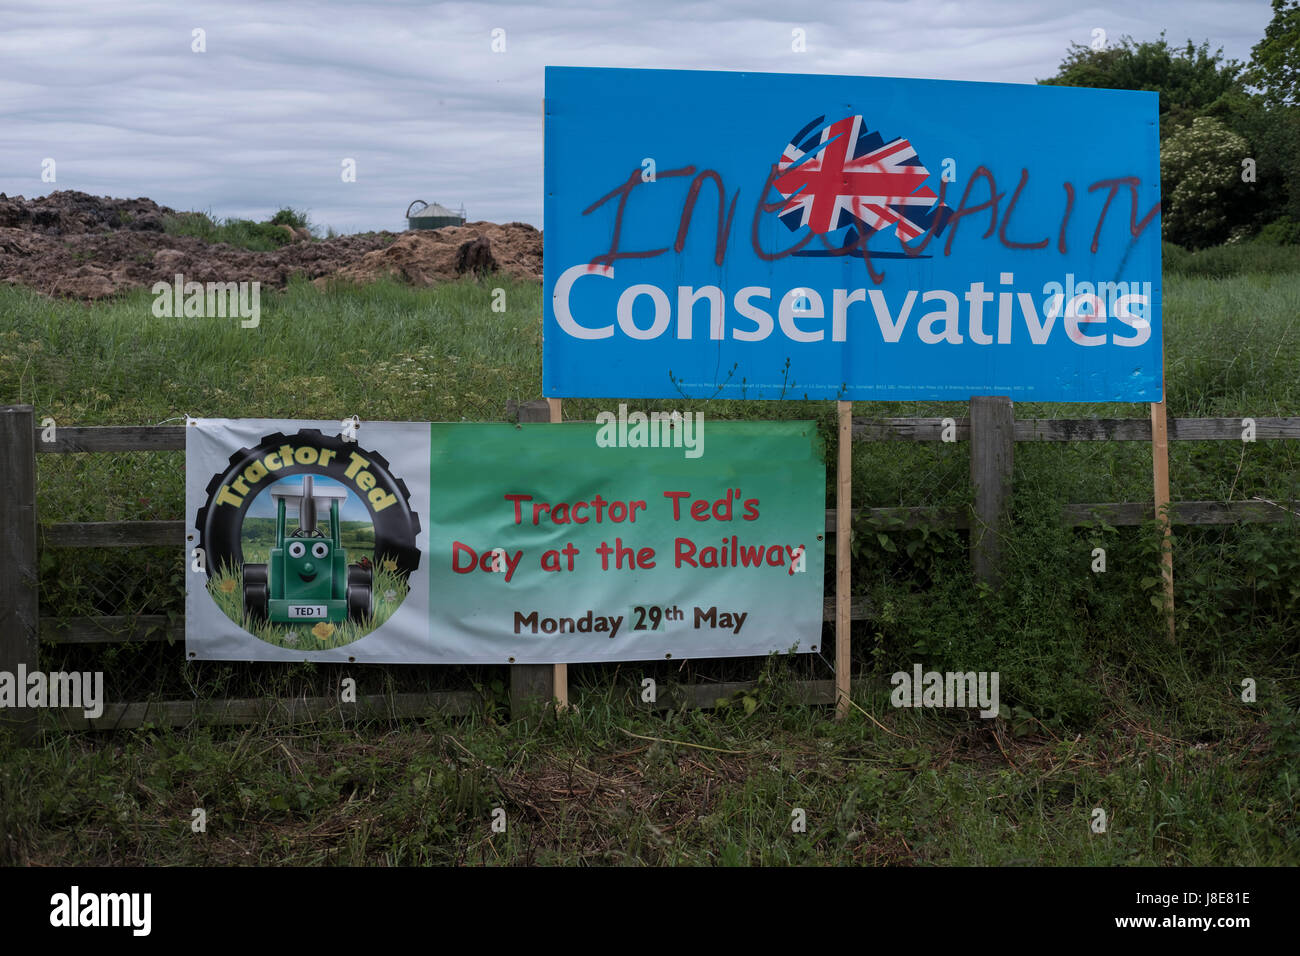 Wincanton, Somerset, UK. 28th May, 2017.  Defaced Tory election poster on side of road. Credit: Paul Chambers/Alamy - Stock Image